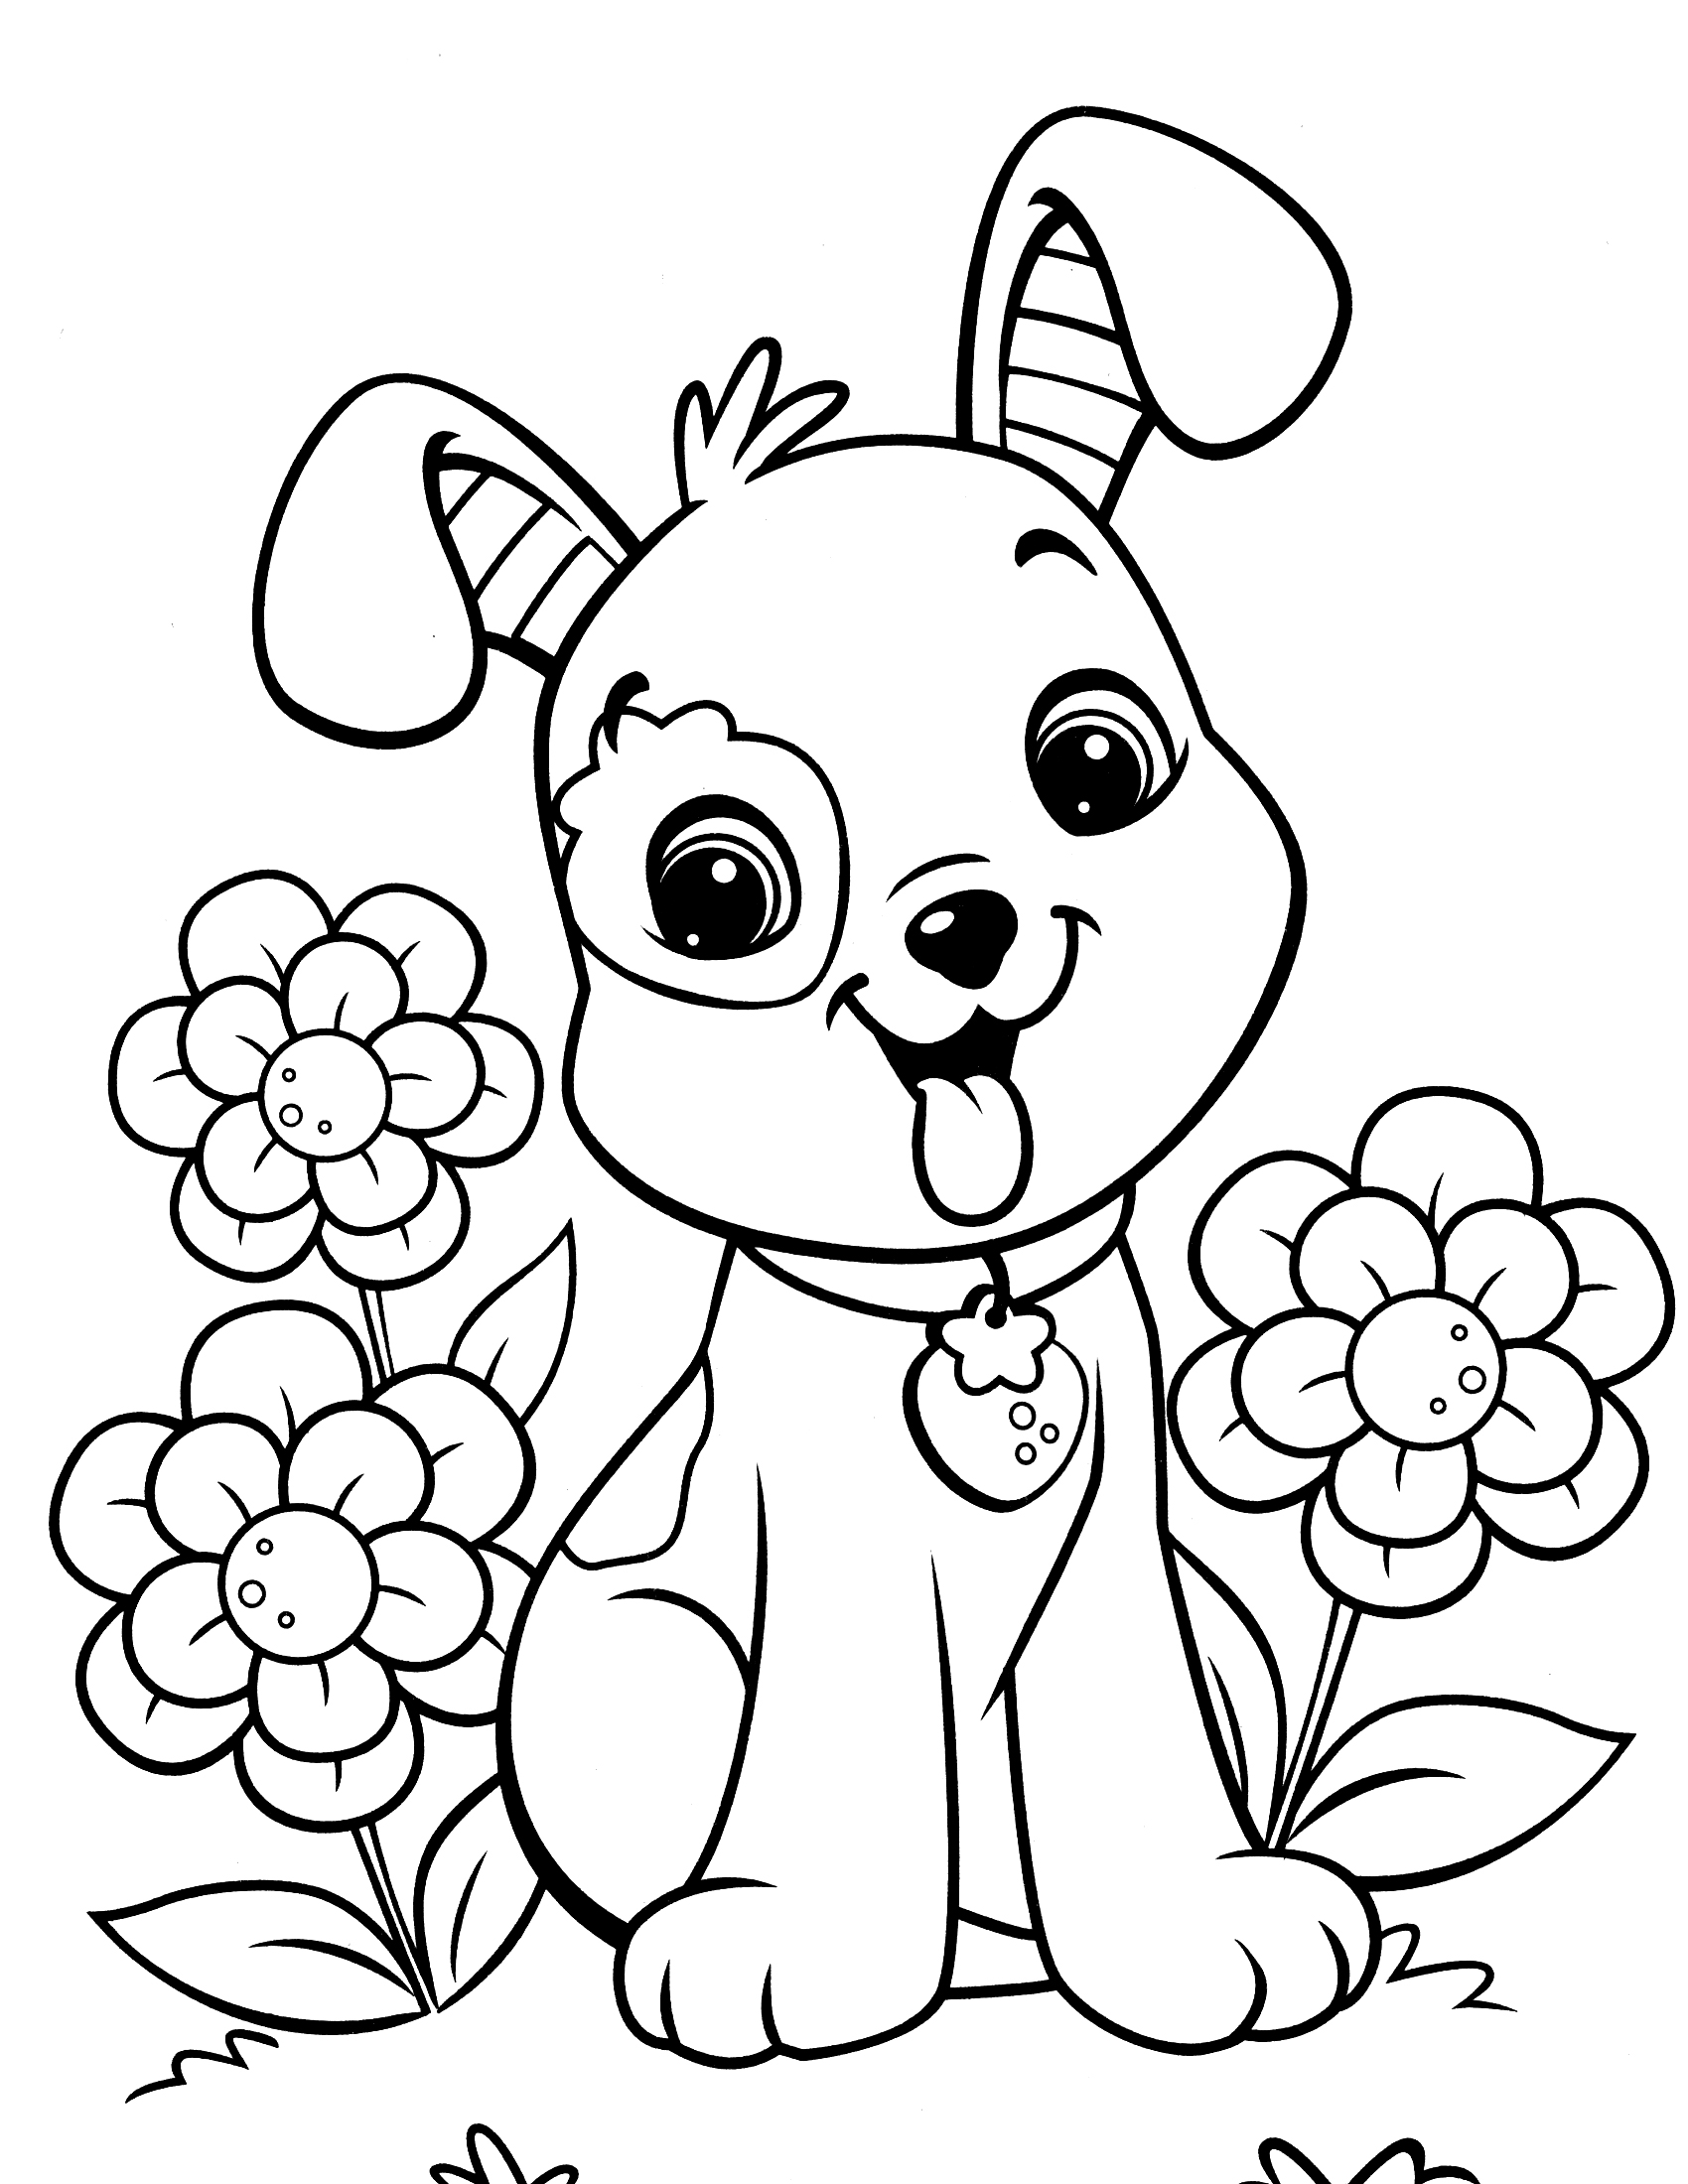 Free Puppy Coloring Page Printable